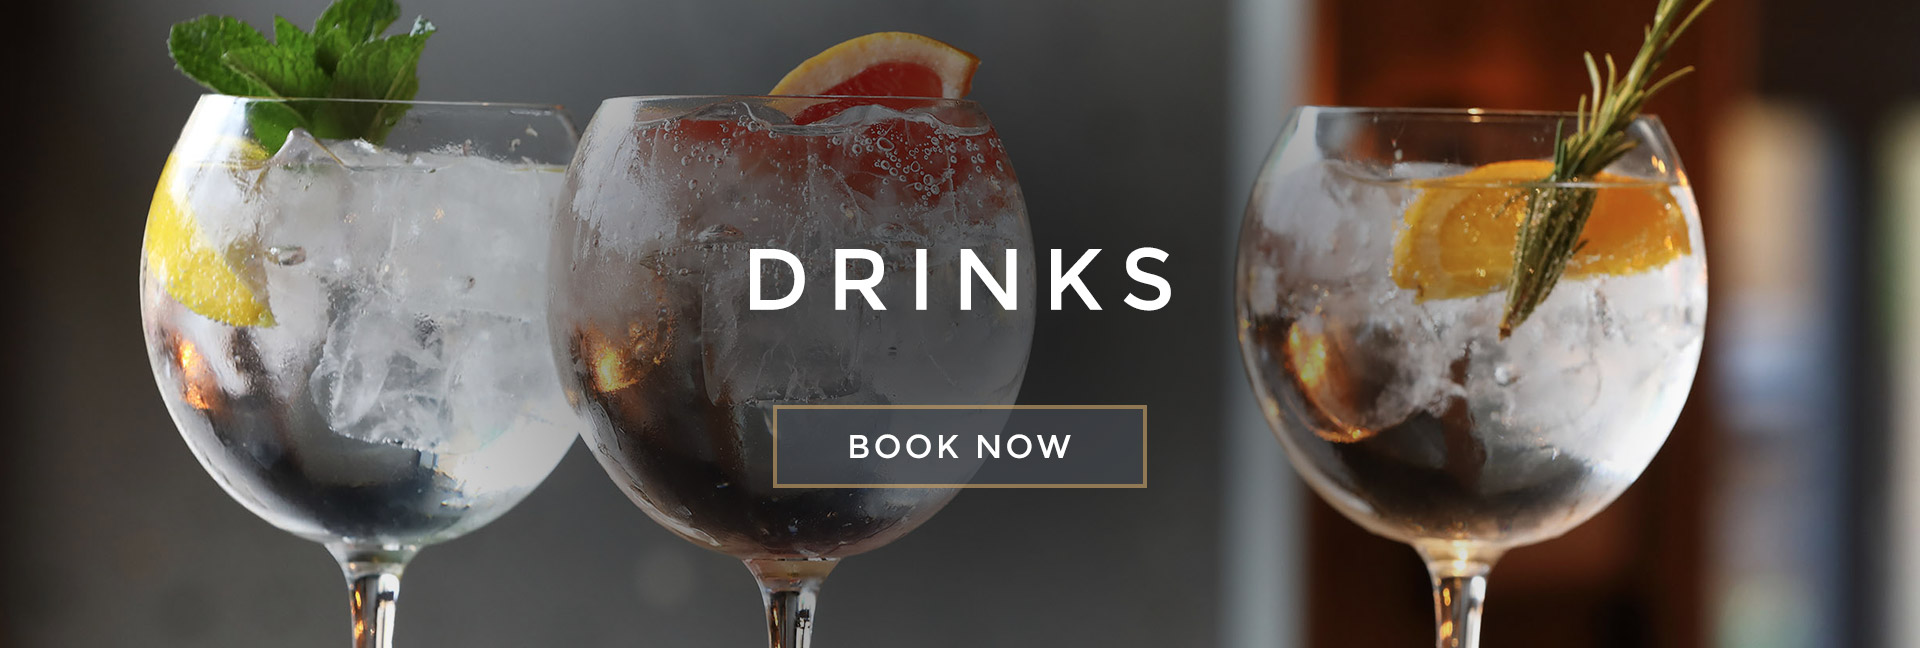 Drinks at All Bar One GeorgeSt Edinburgh - Book your table